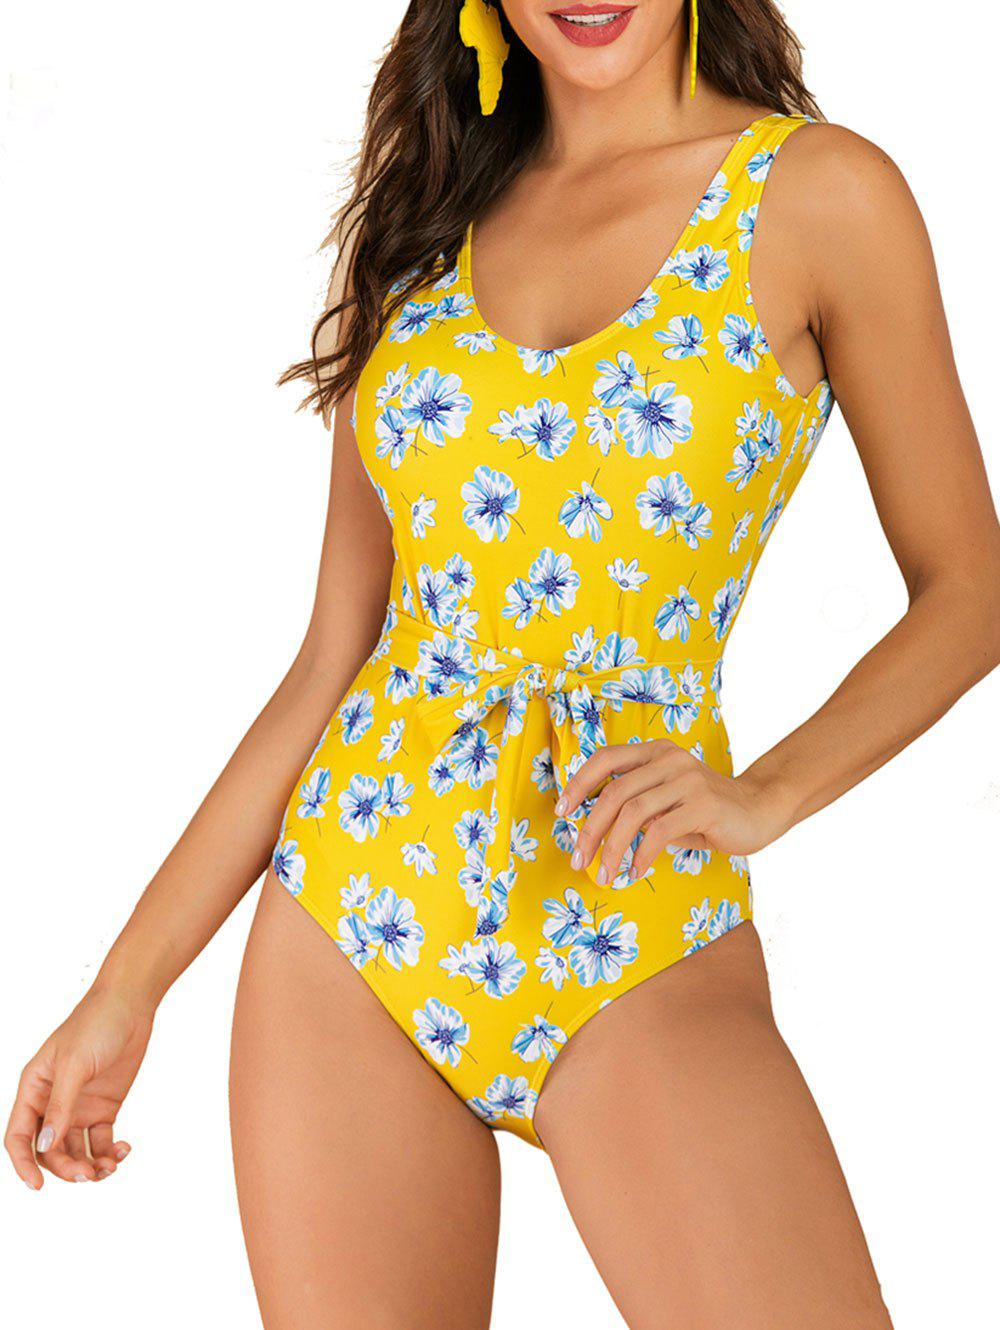 Flower Backless Belted One-piece Swimsuit - YELLOW L